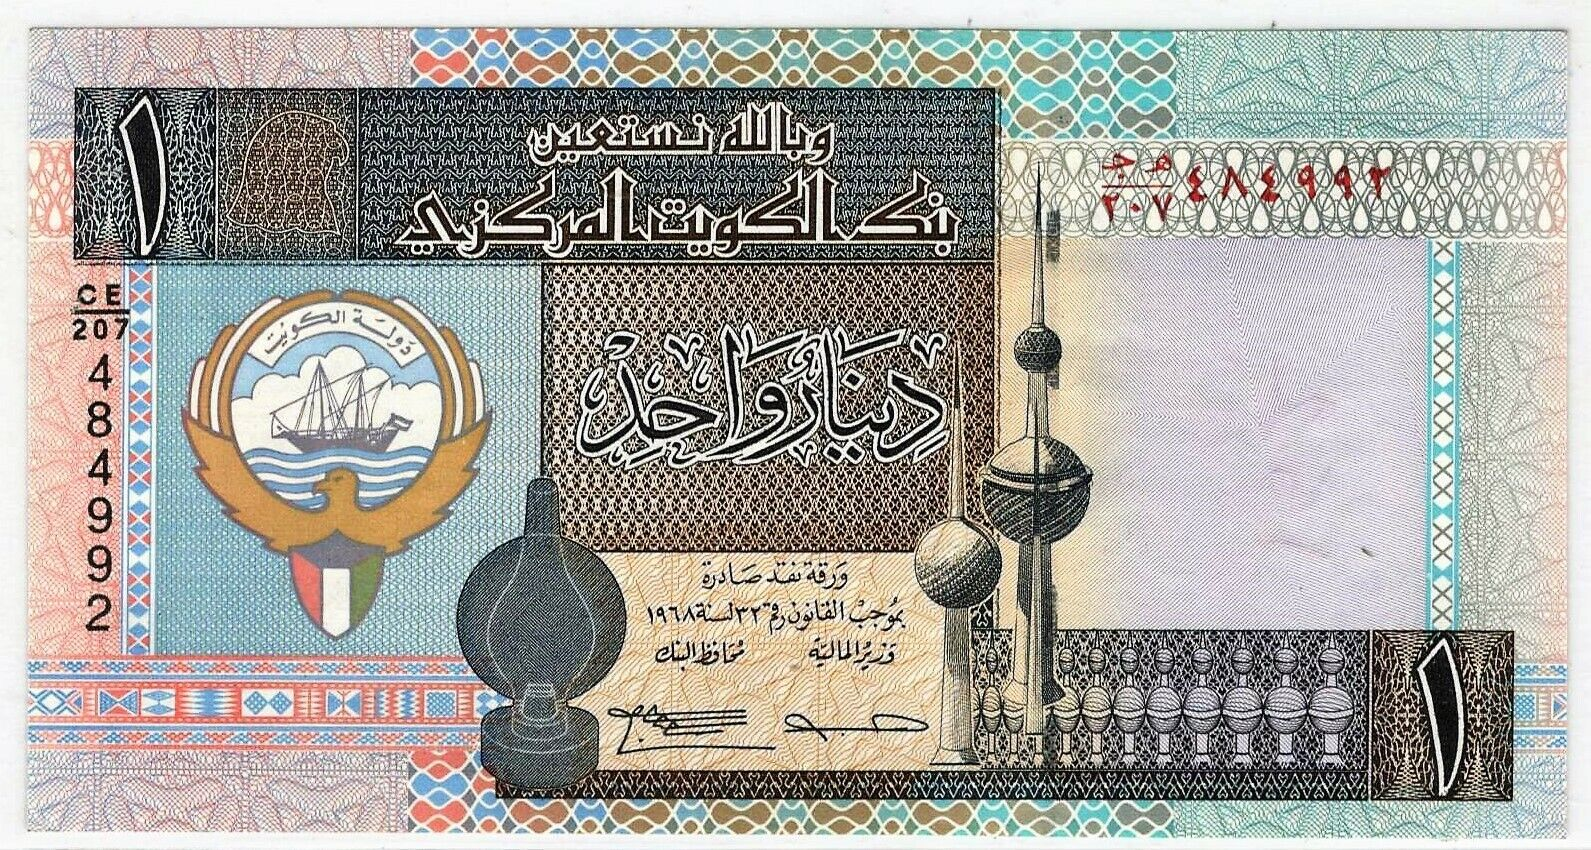 Kuwait, 1991/ 94 Fourth Issue One Dinar, Missing Print Error In Back UNC 464 - $12.00